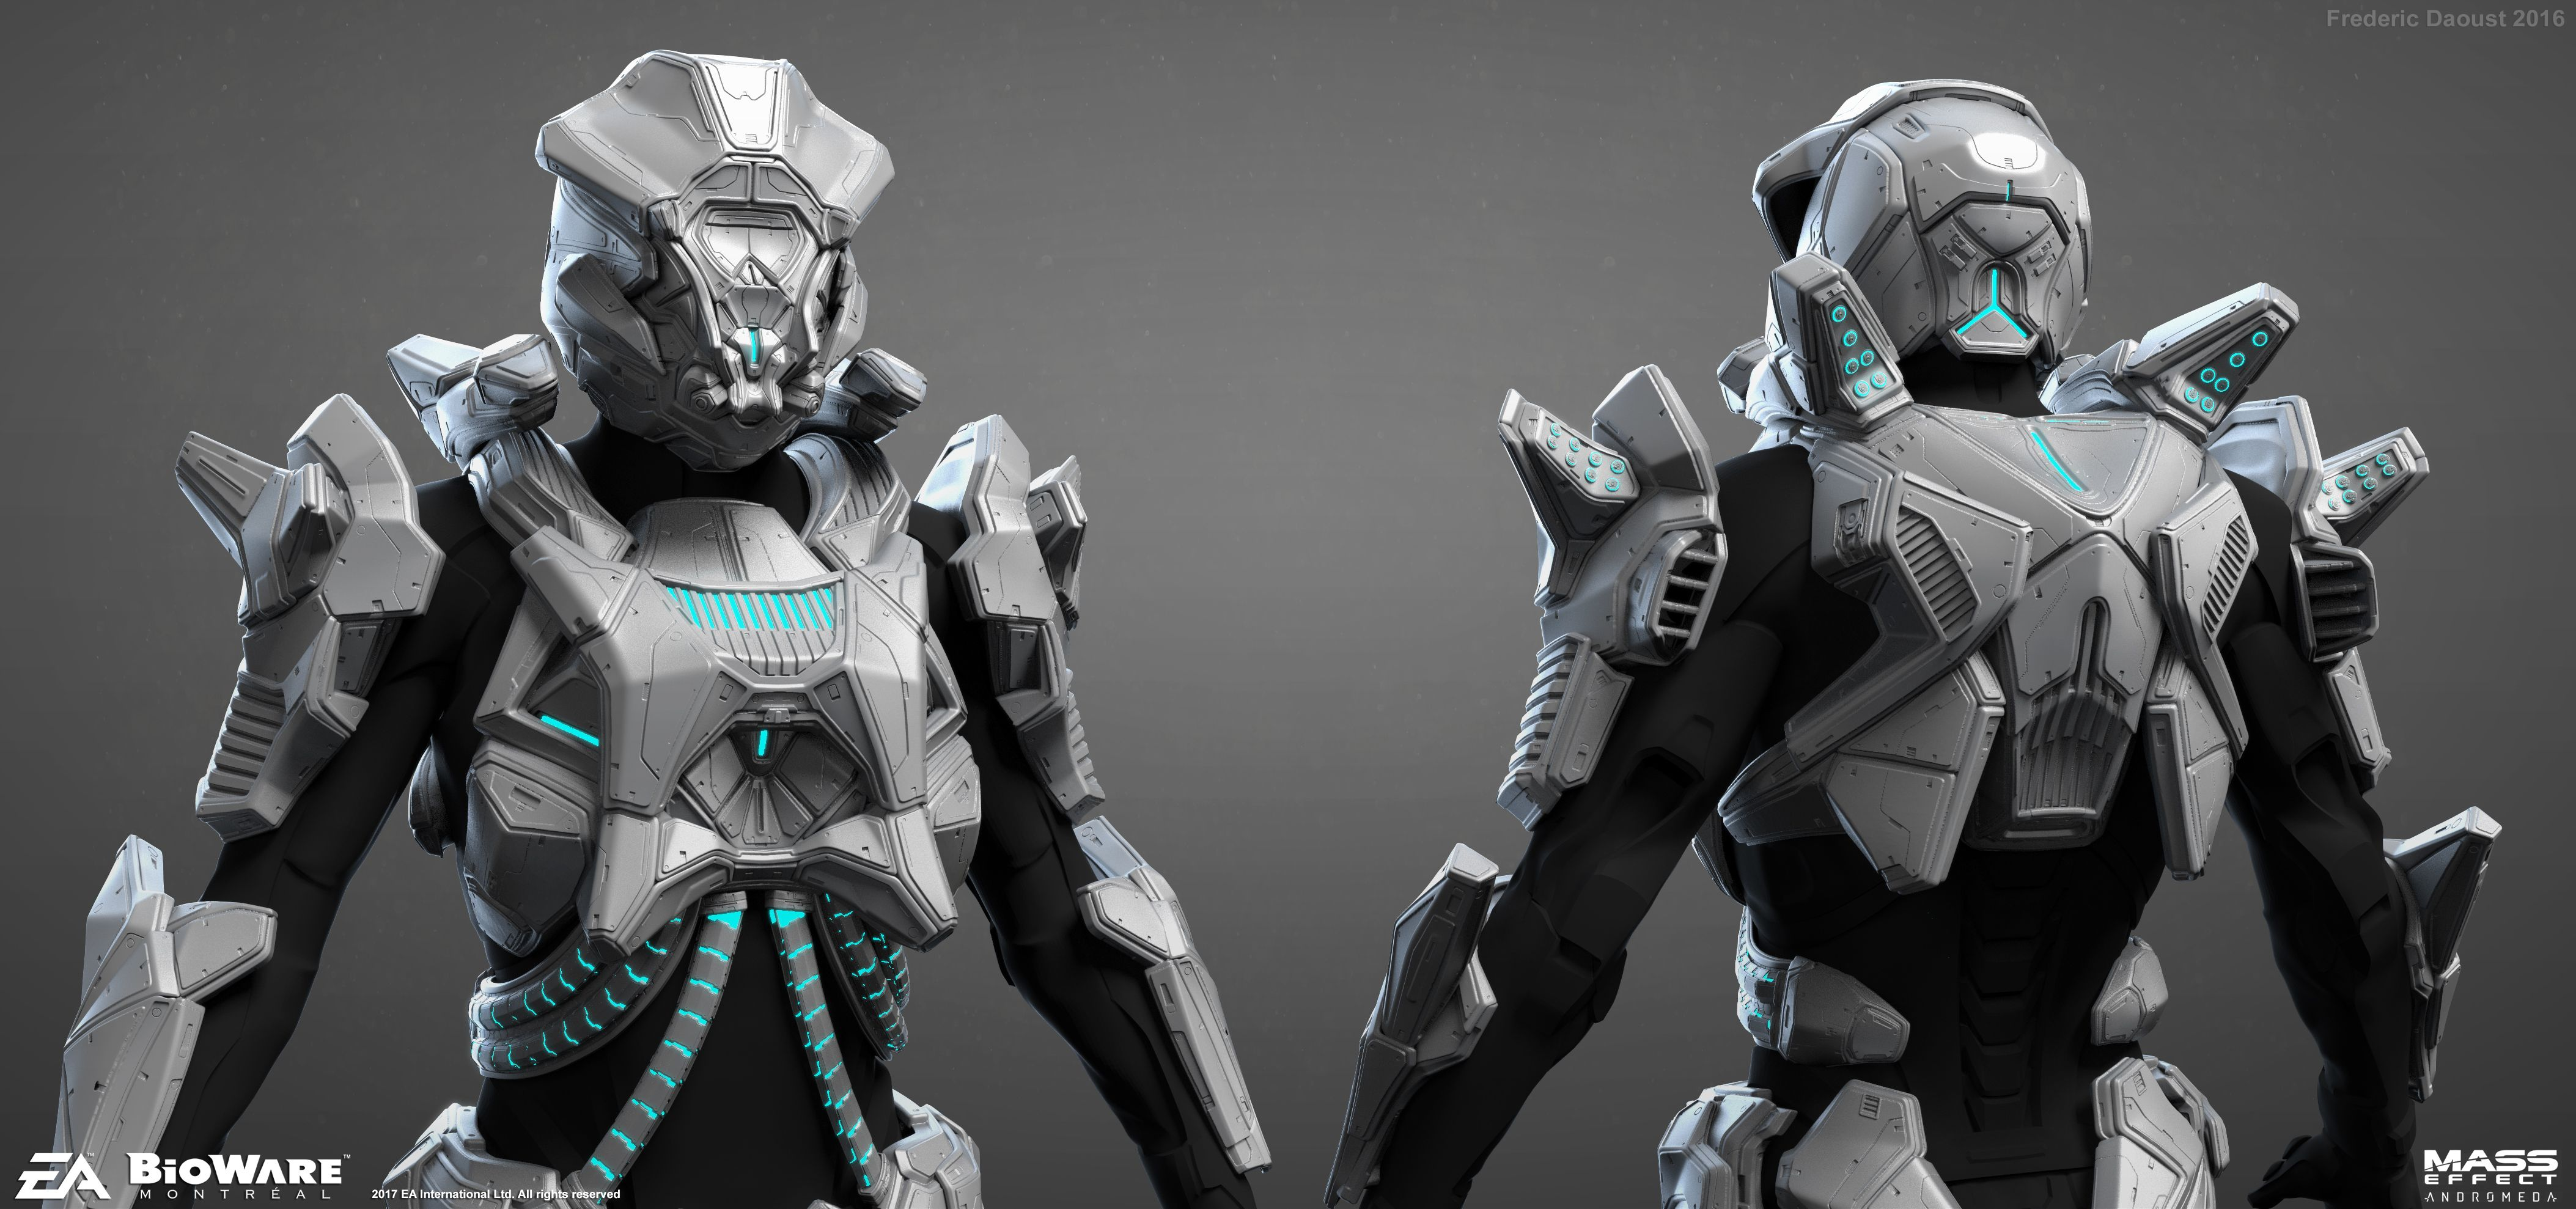 mass effect remnant armor by frederic daoust sci fi 3d